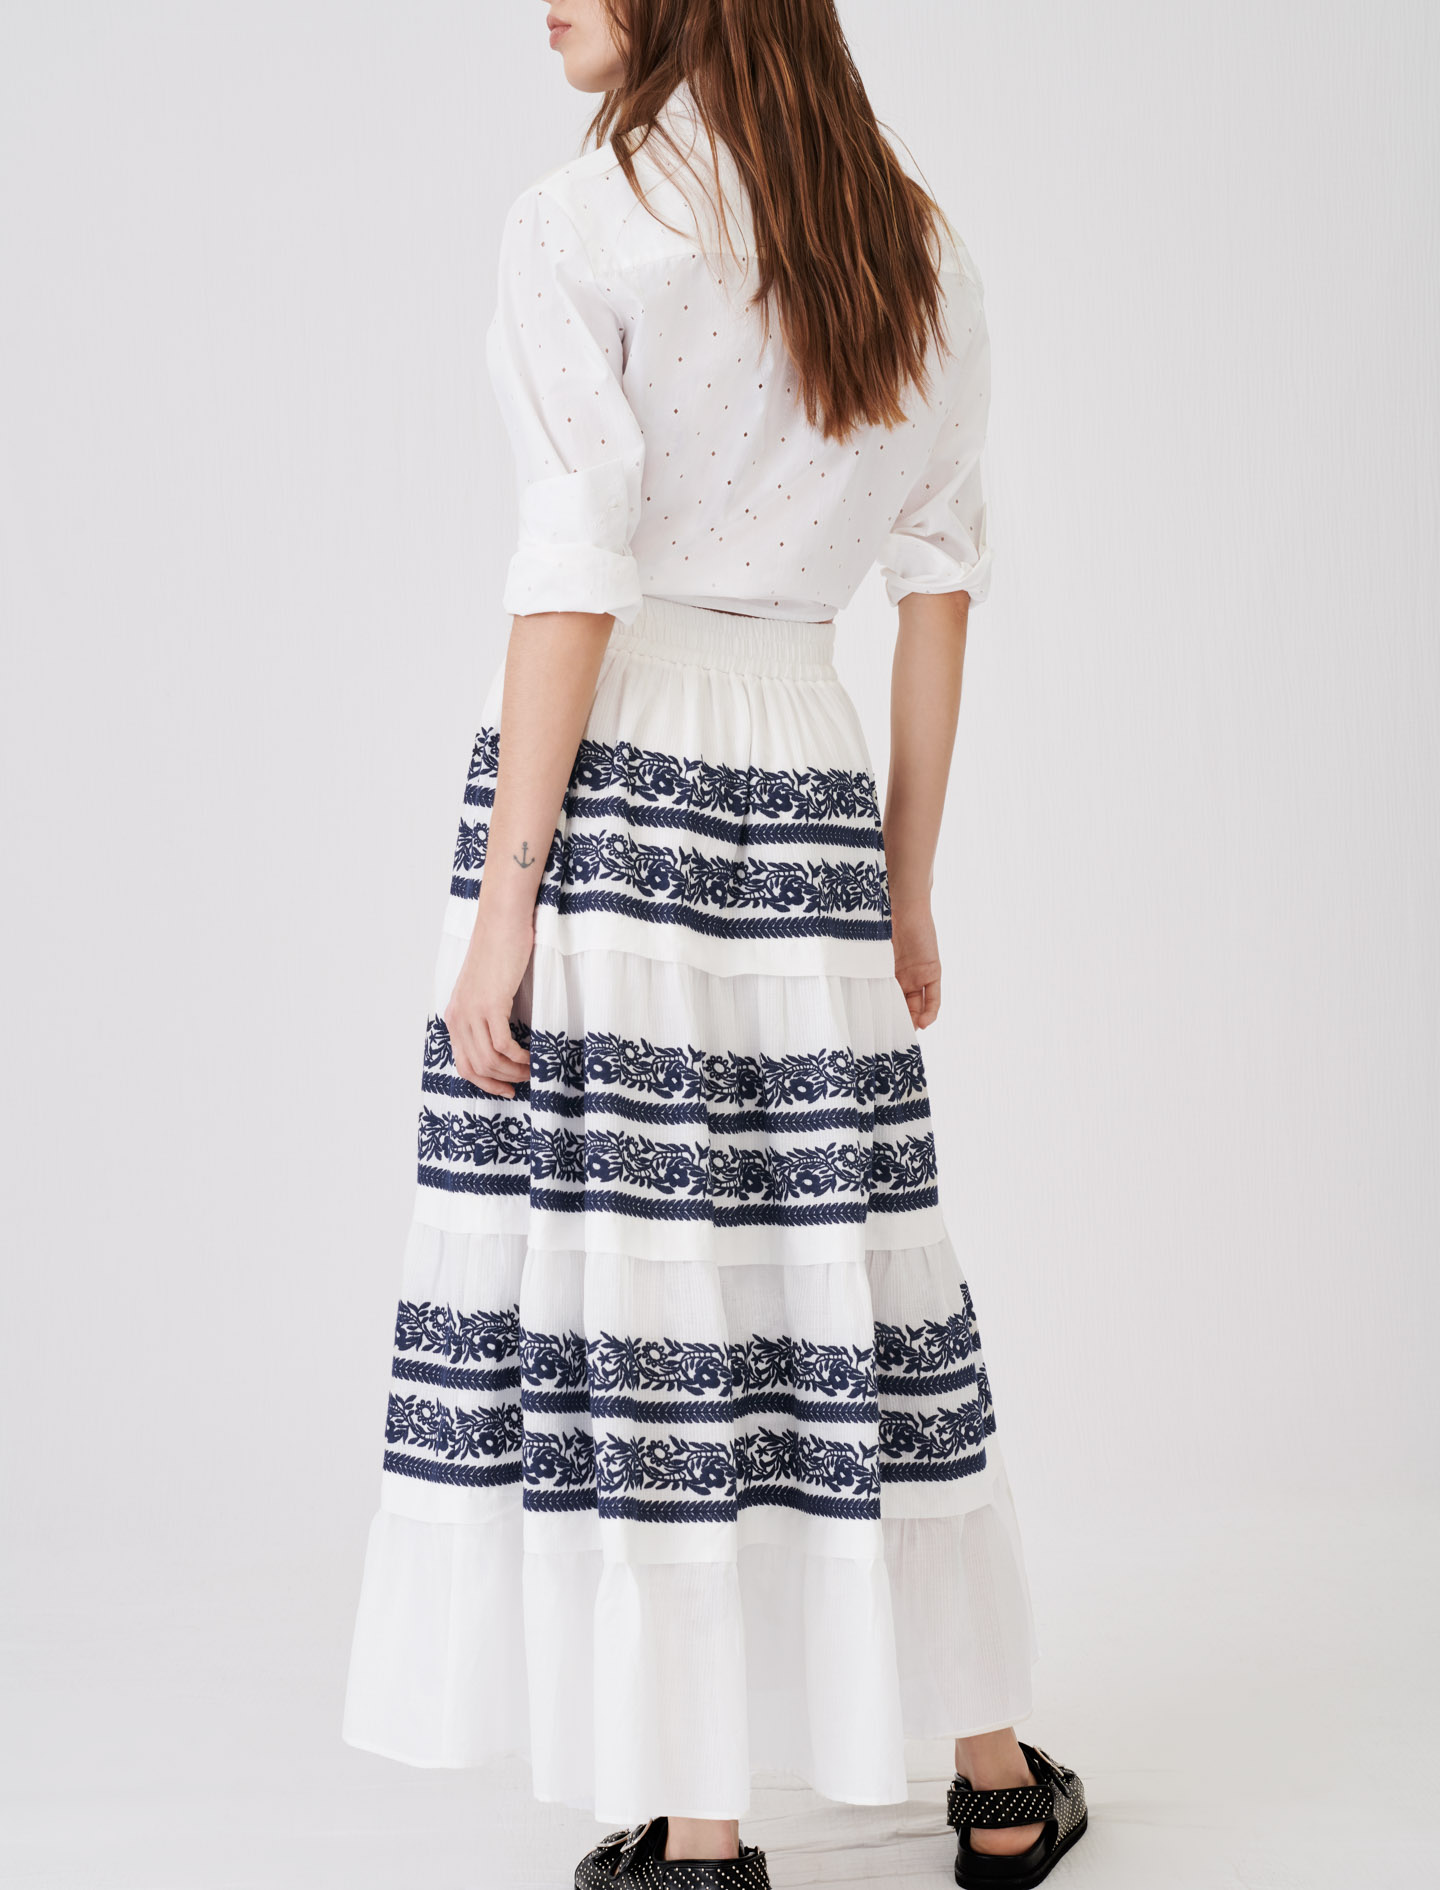 Skirt with all-over embroidery